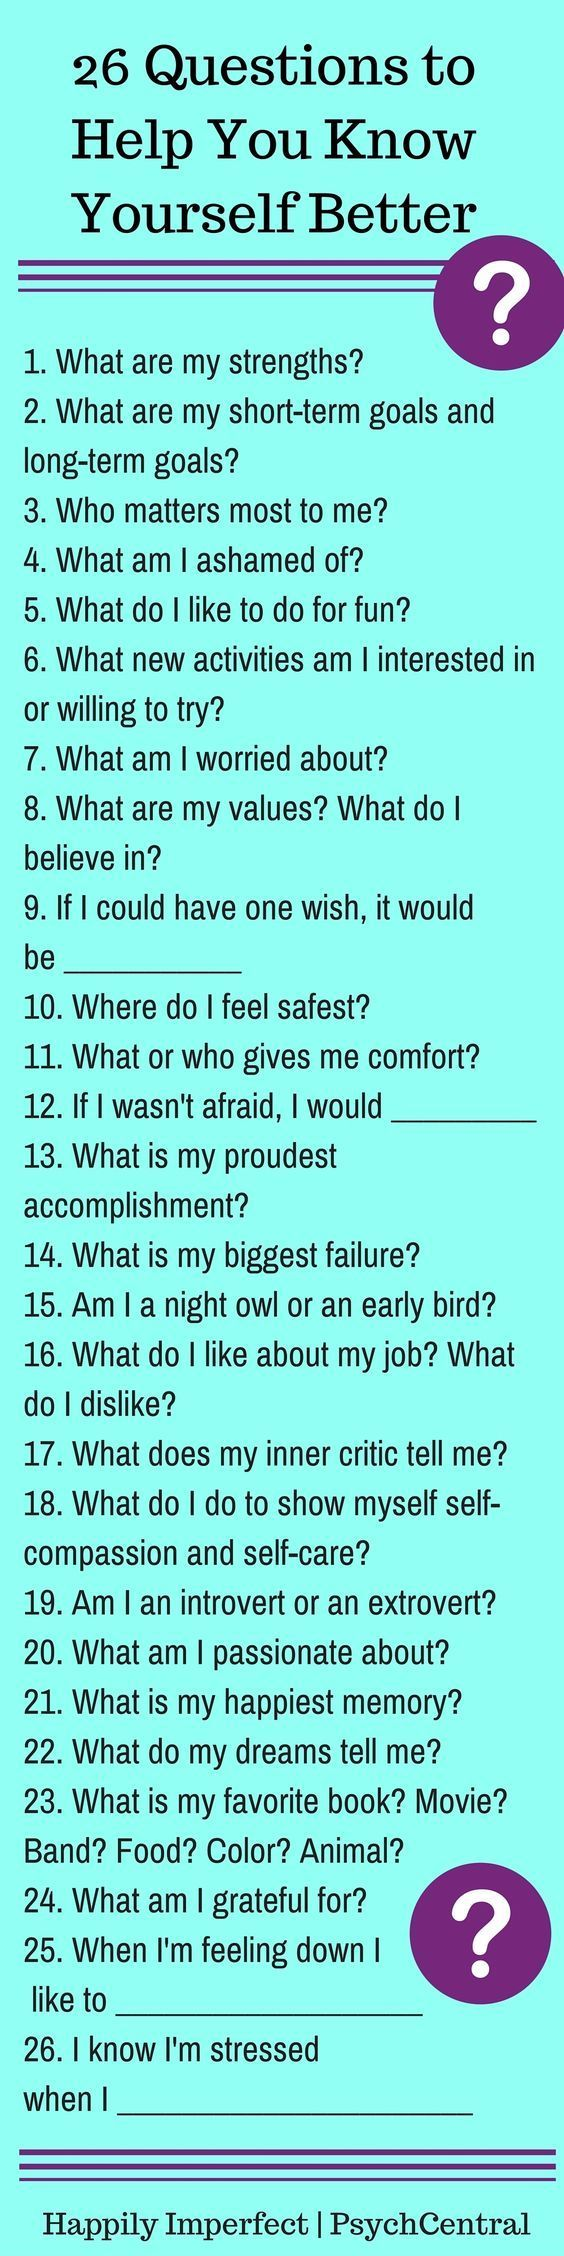 26 Questions to Help You Know Yourself Better::